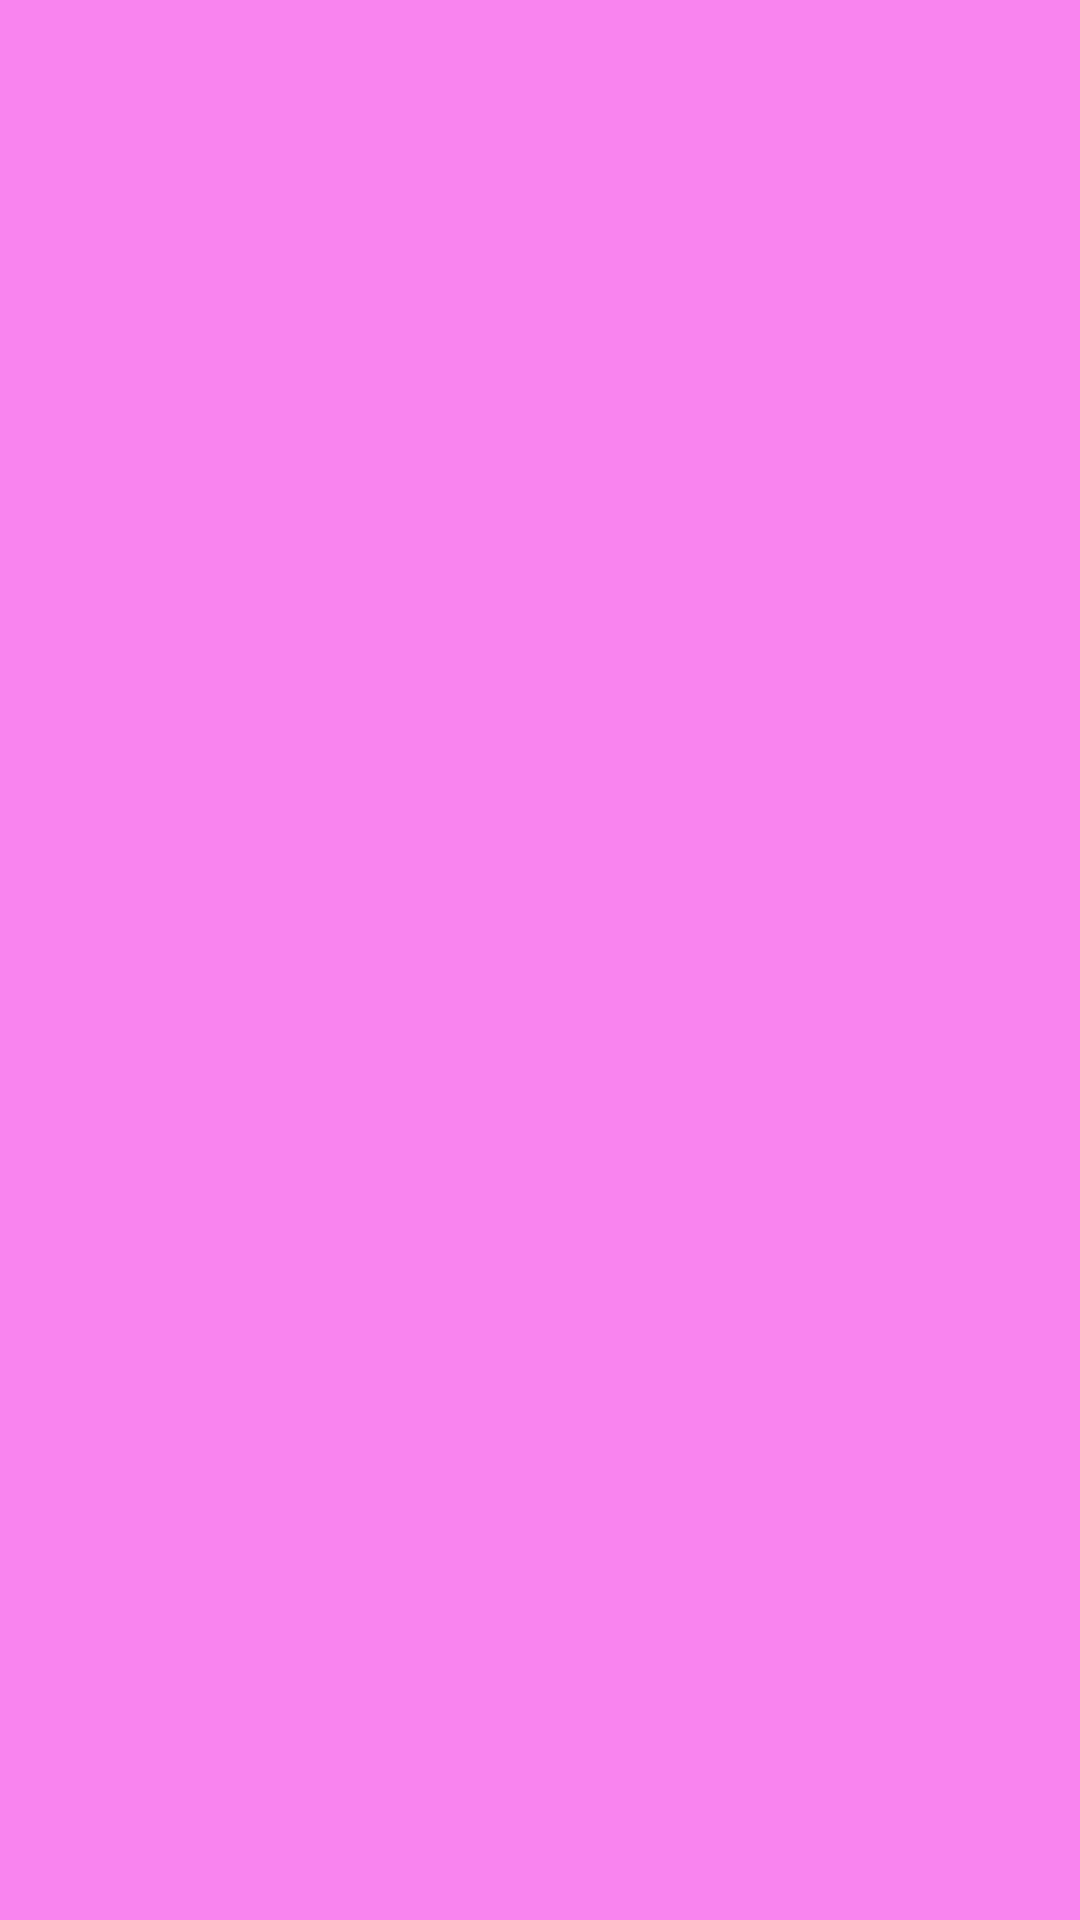 1080x1920 Light Fuchsia Pink Solid Color Background